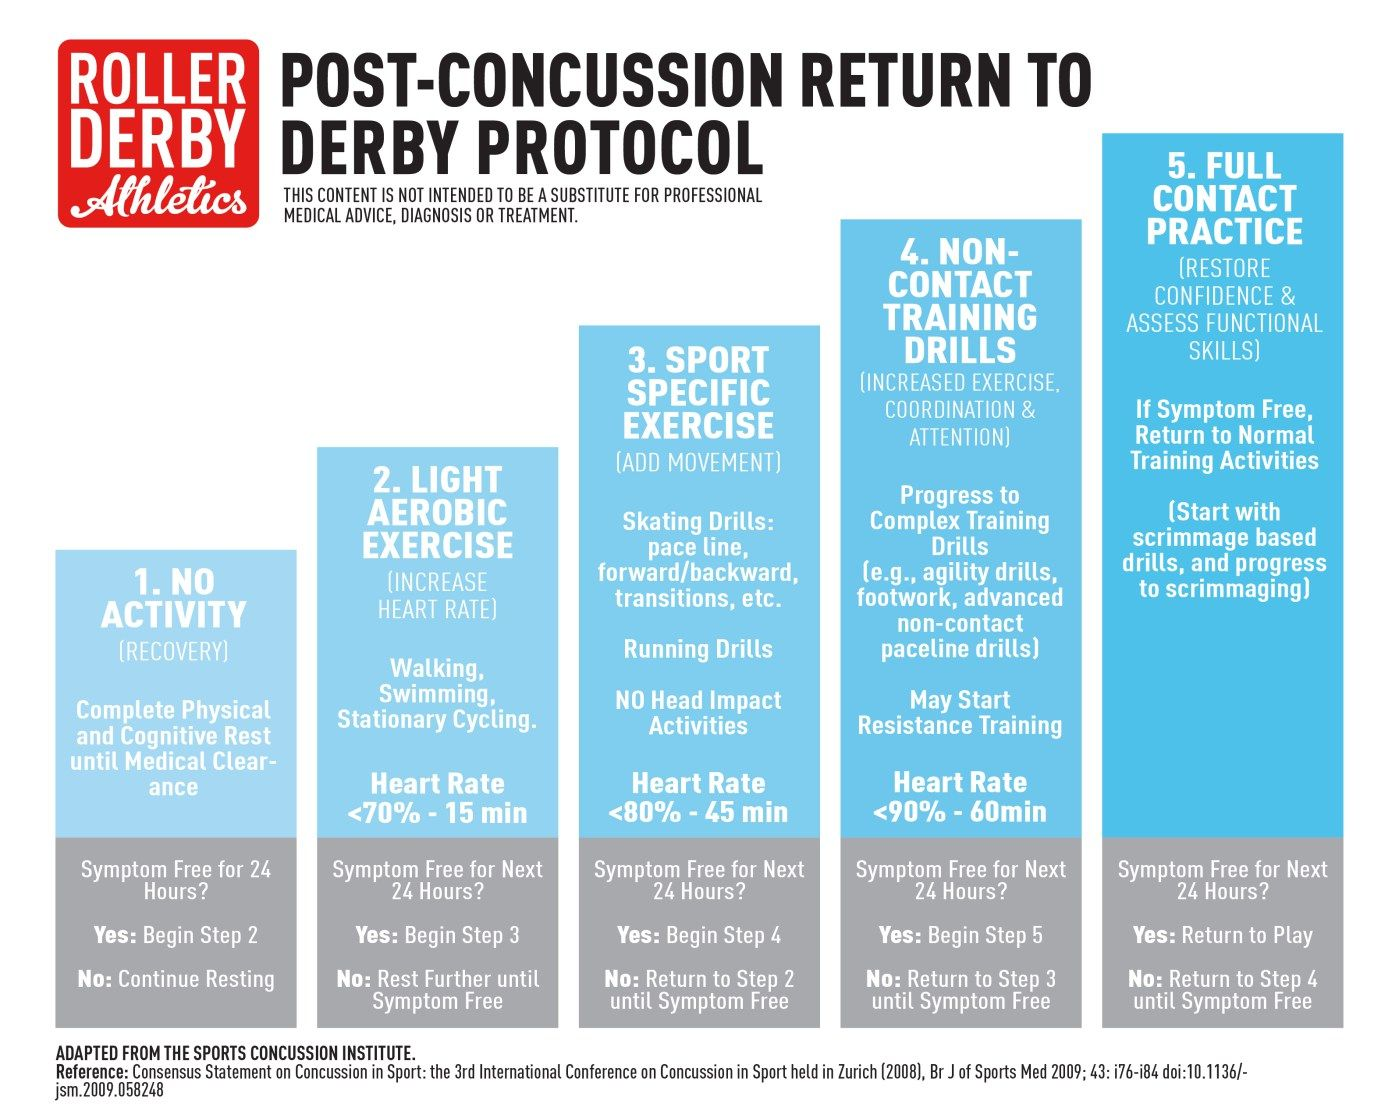 Post Concussion Return To Play In >> Post Concussion Return To Derby Protocol Roller Derby Roller